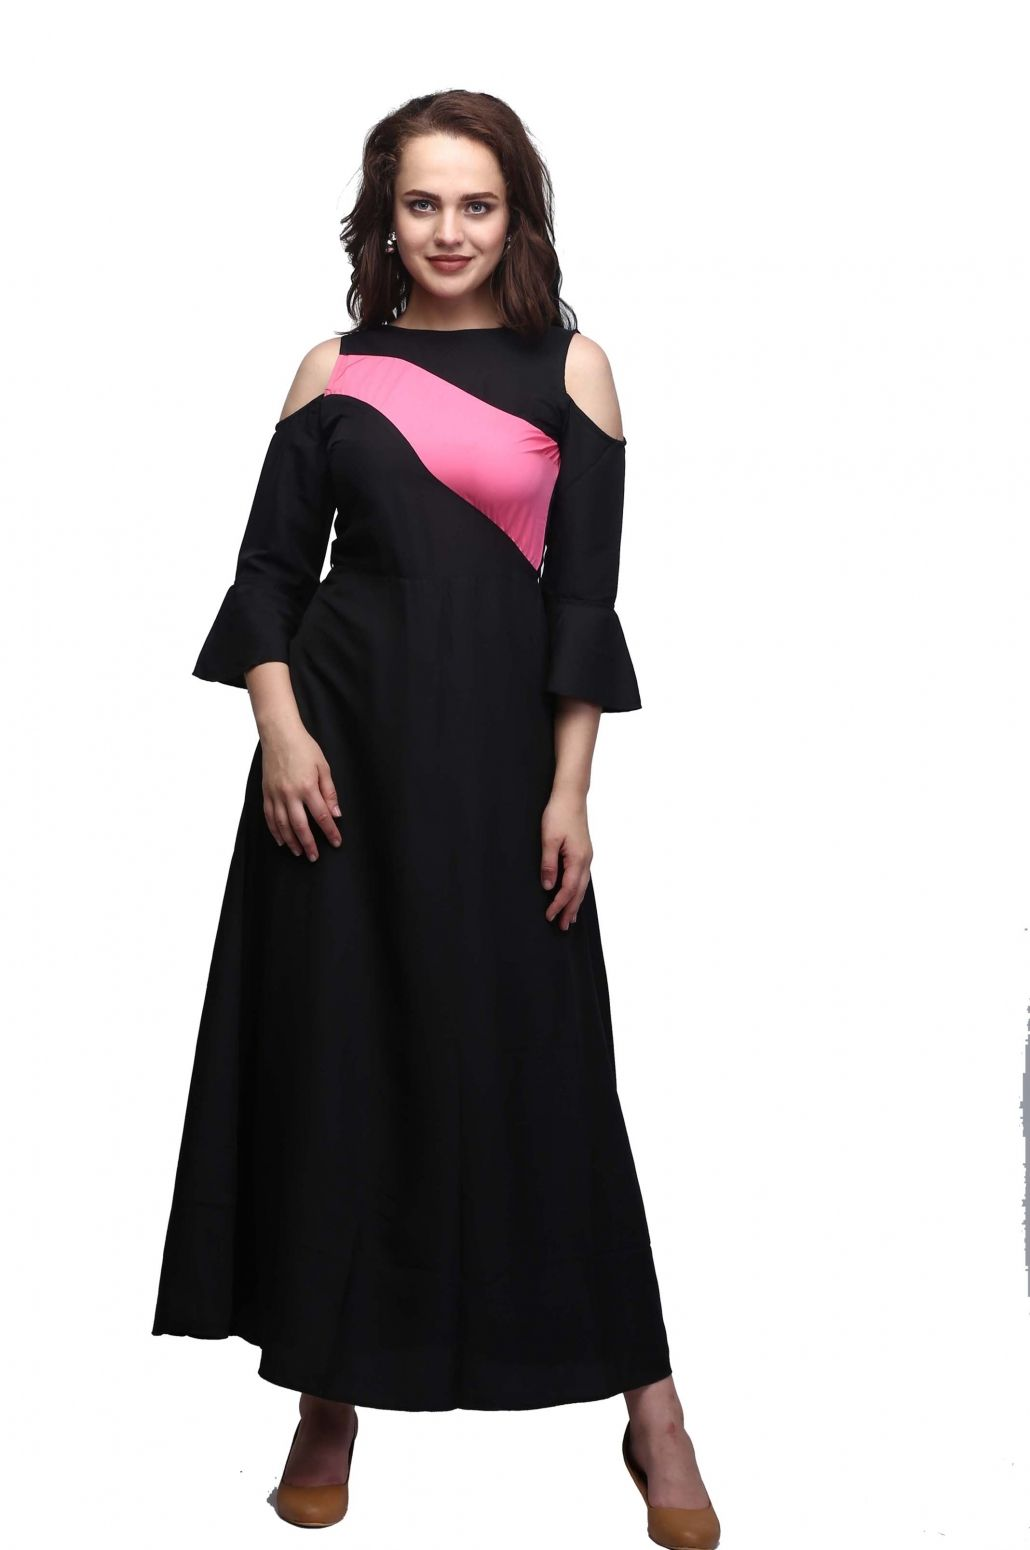 79ba50f3989 Pin by Winsant - One of India s fastest growing Online Shopping Websites on  Western Dresses for Women